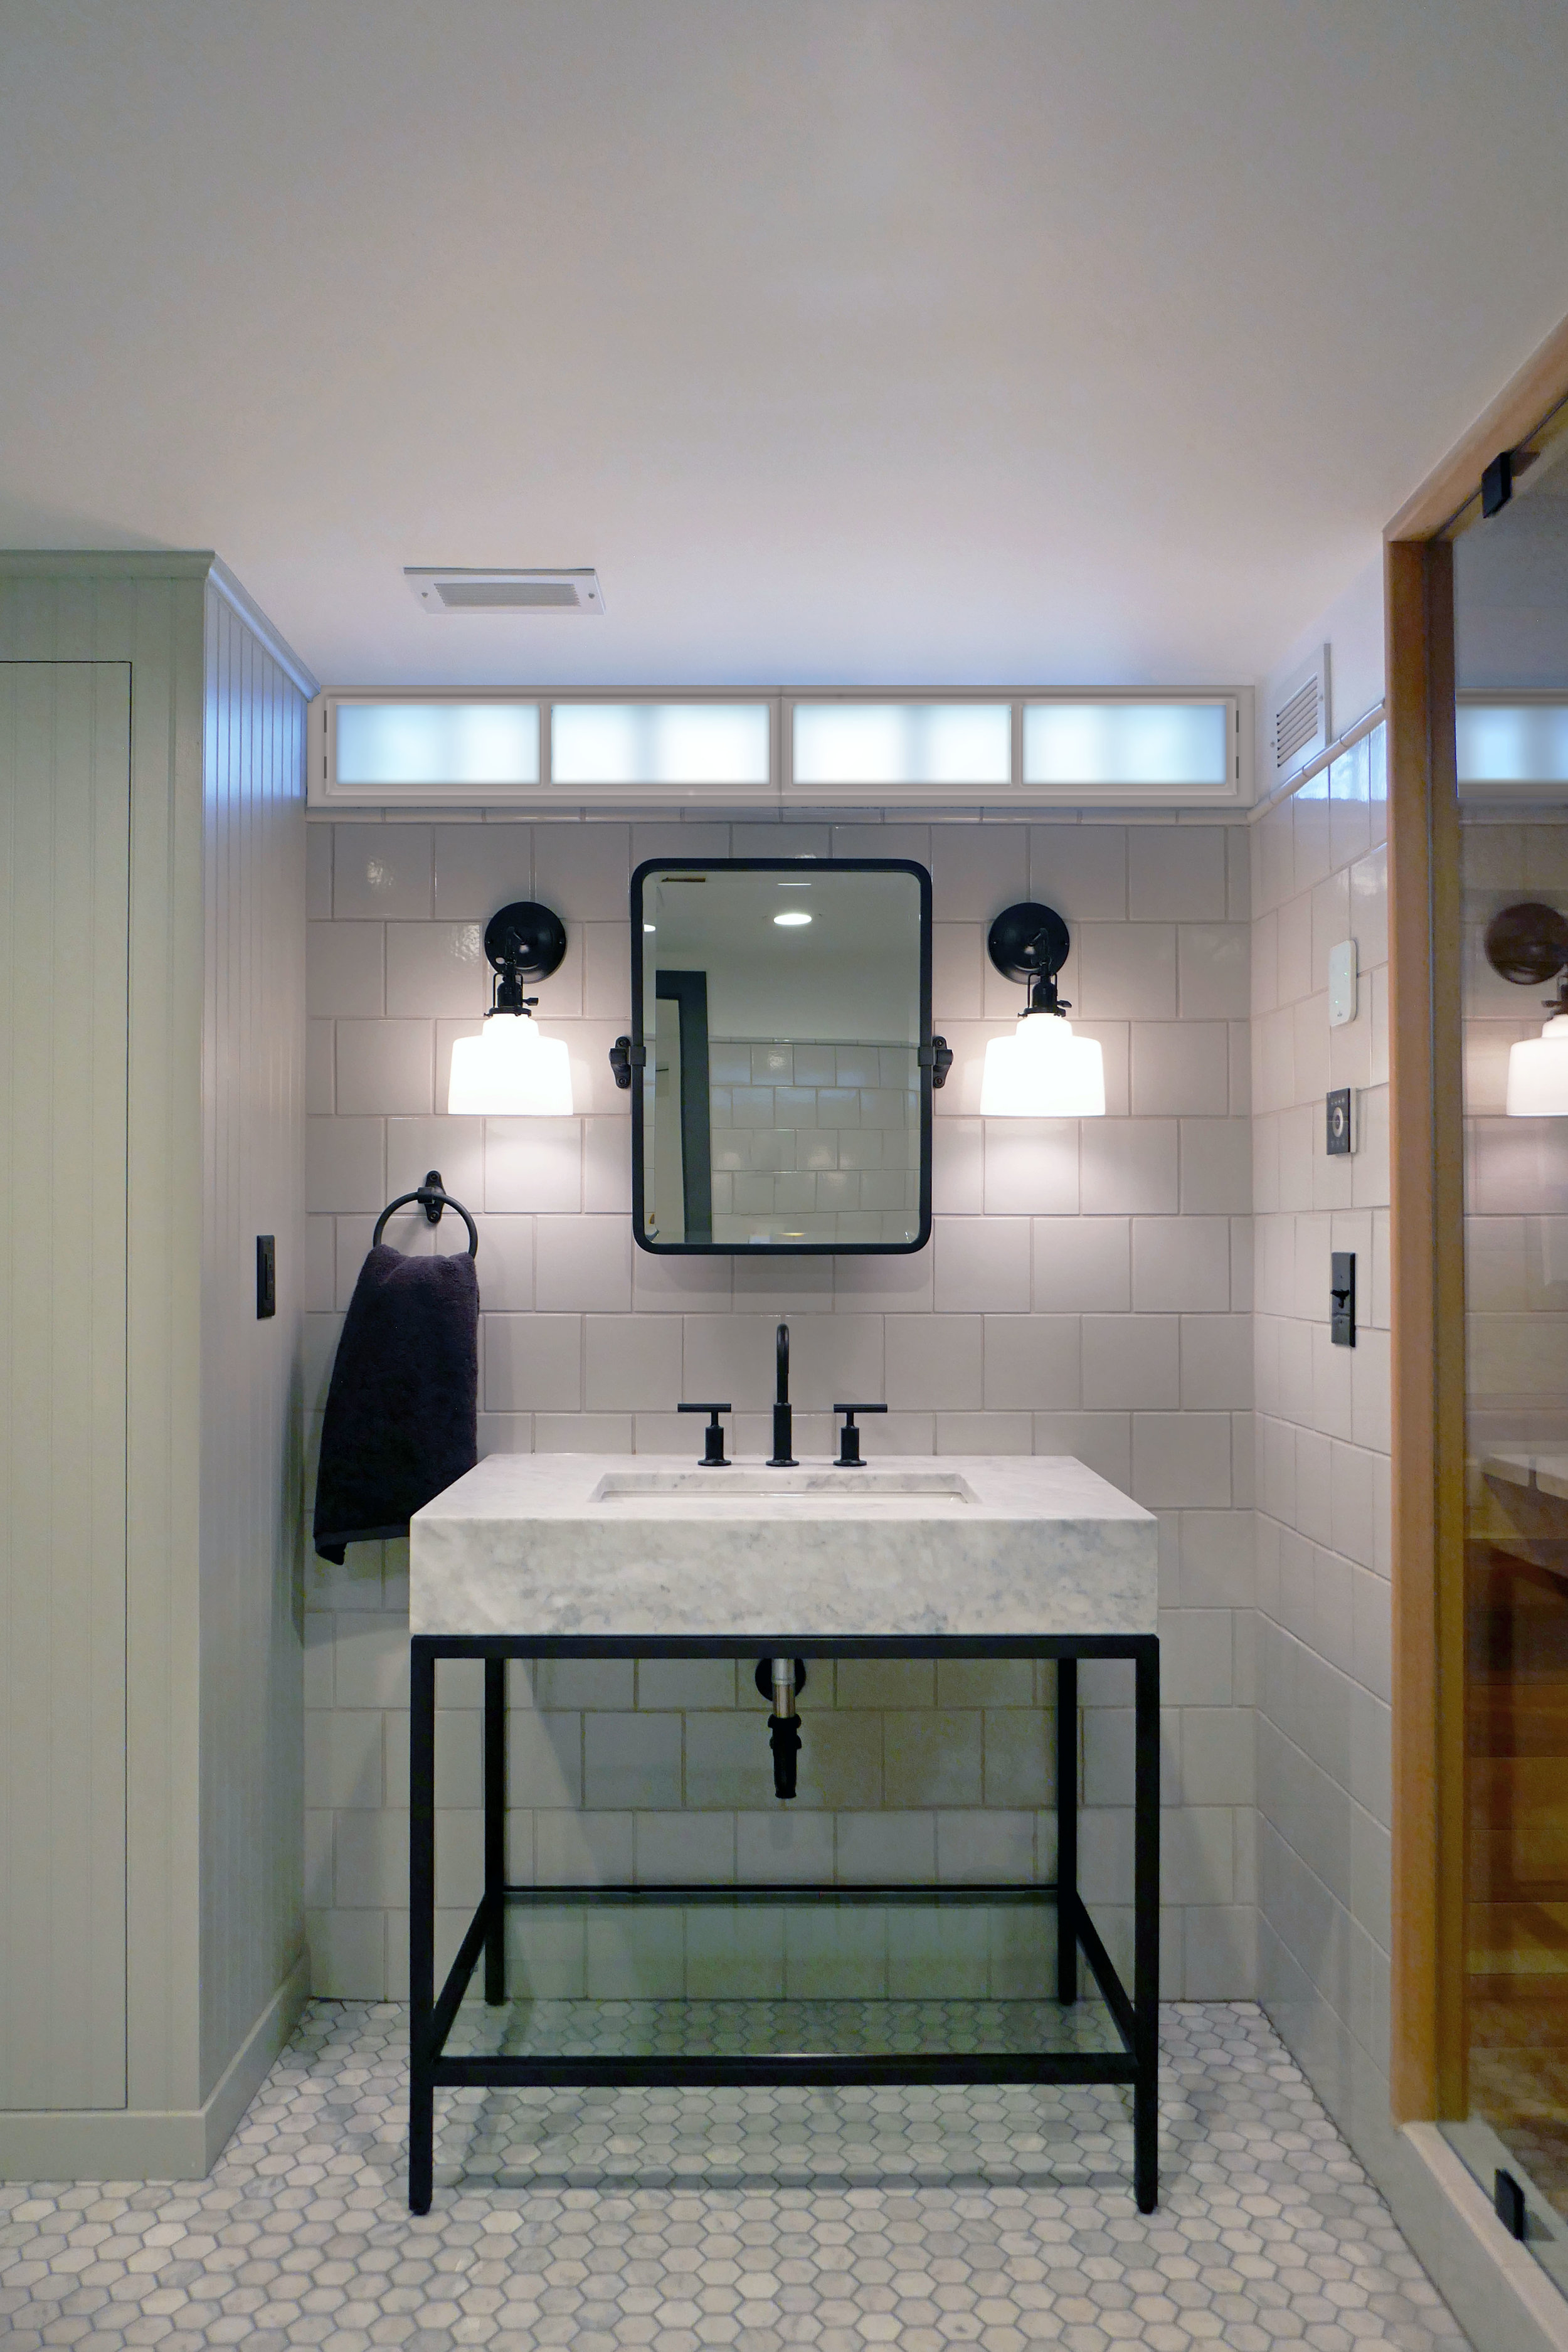 A clean and modern bathroom remodel by NewStudio Architecture blends with the home's early 20th century aesthetic.